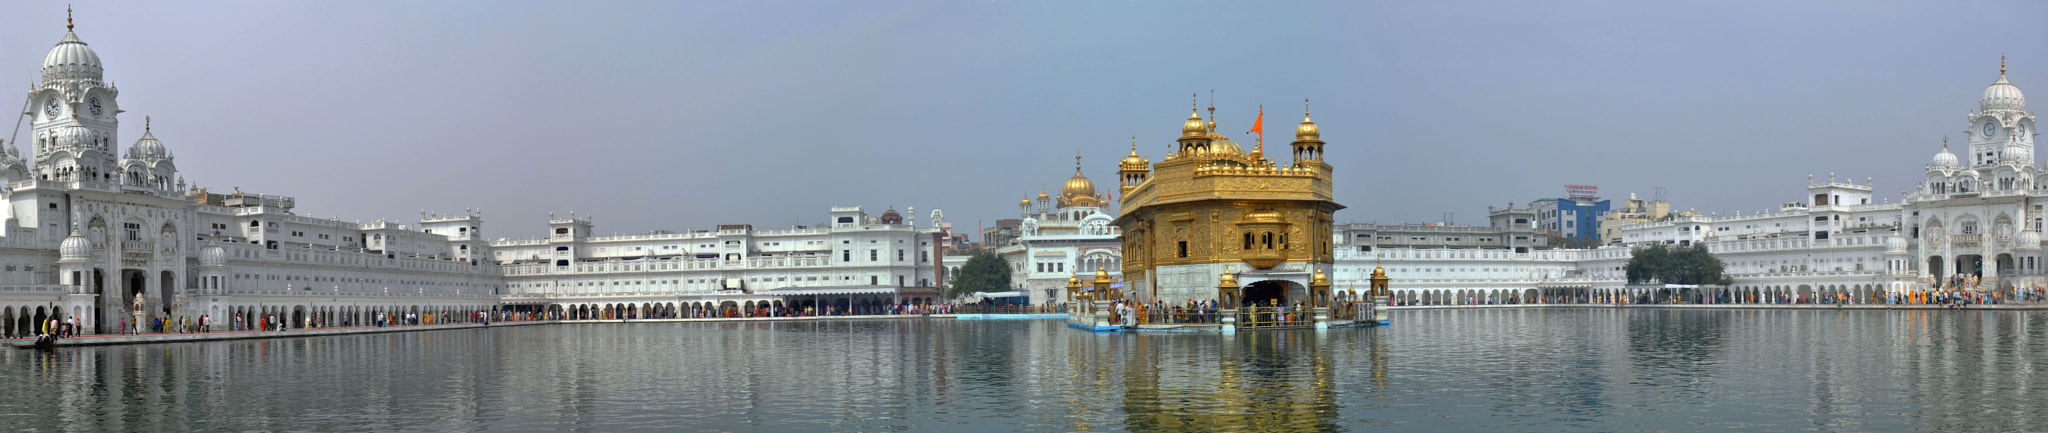 Photograph Golden Temple Panaroma by Mohan Loke on 500px